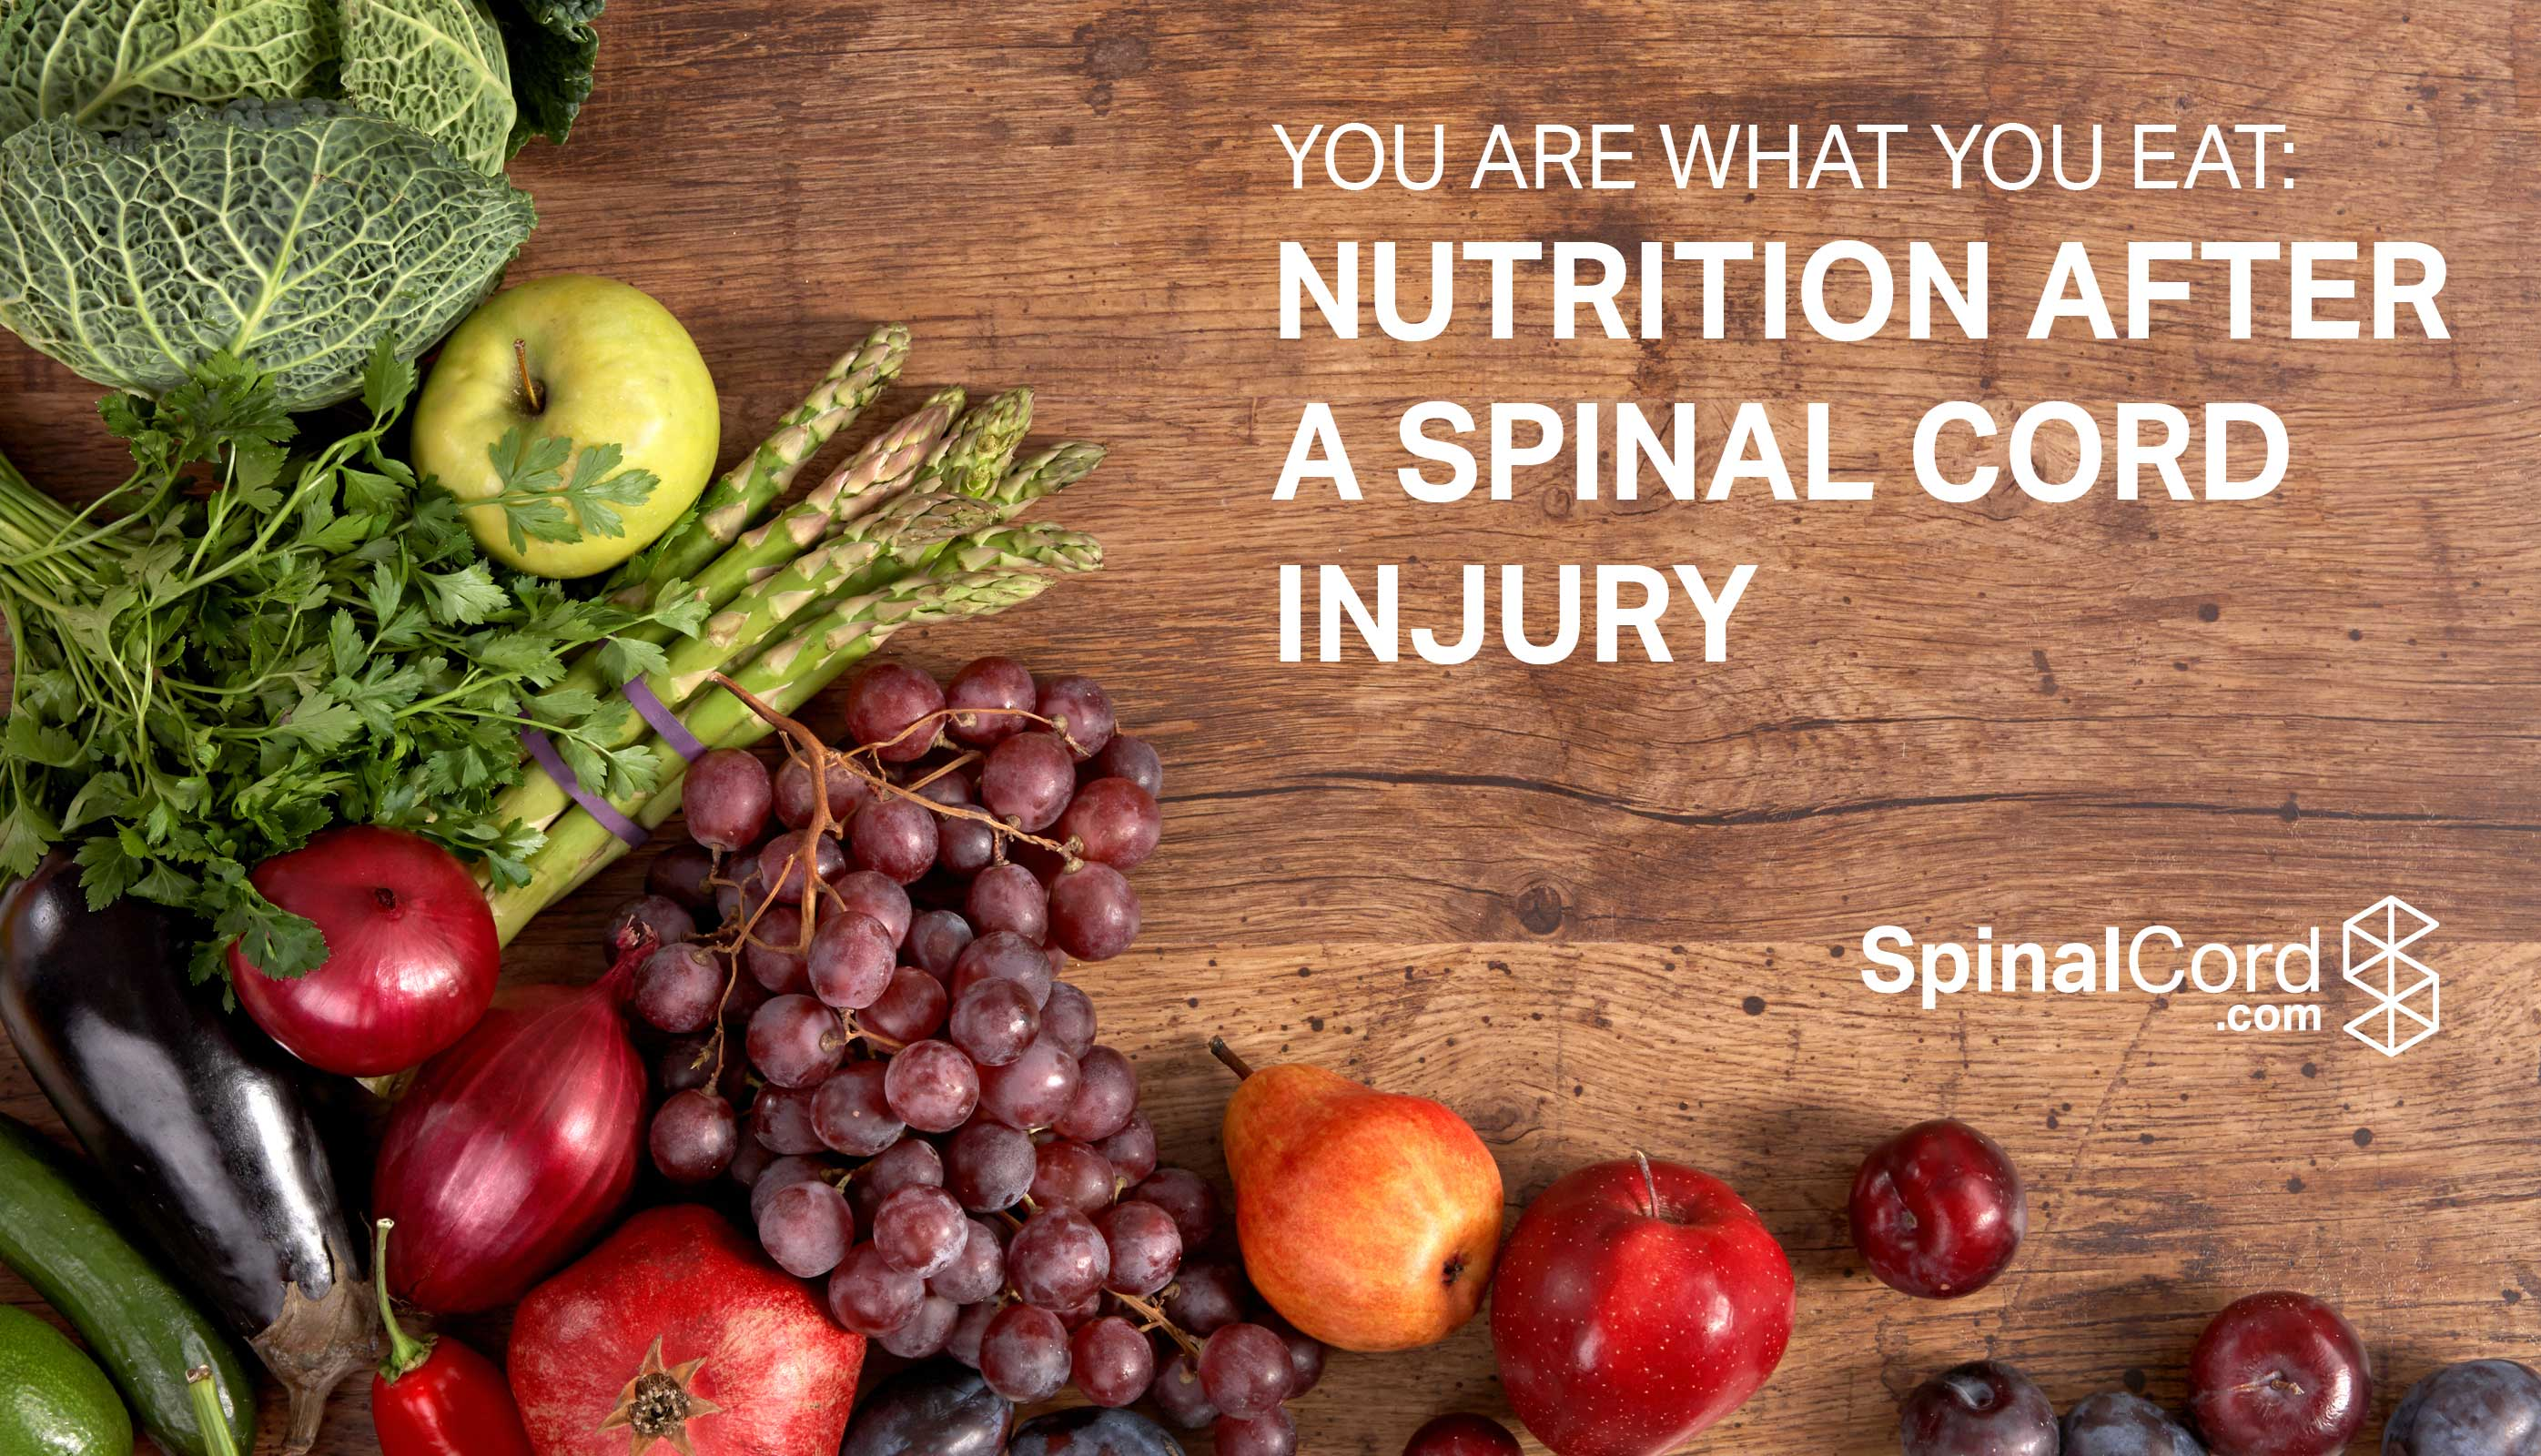 preventing spinal cord injury If you have been in a serious accident that resulted in spinal cord injury, you can take action to prevent others from being hurt equipment manufacturers and property owners are, or should be, aware of measures to prevent such serious injuries.